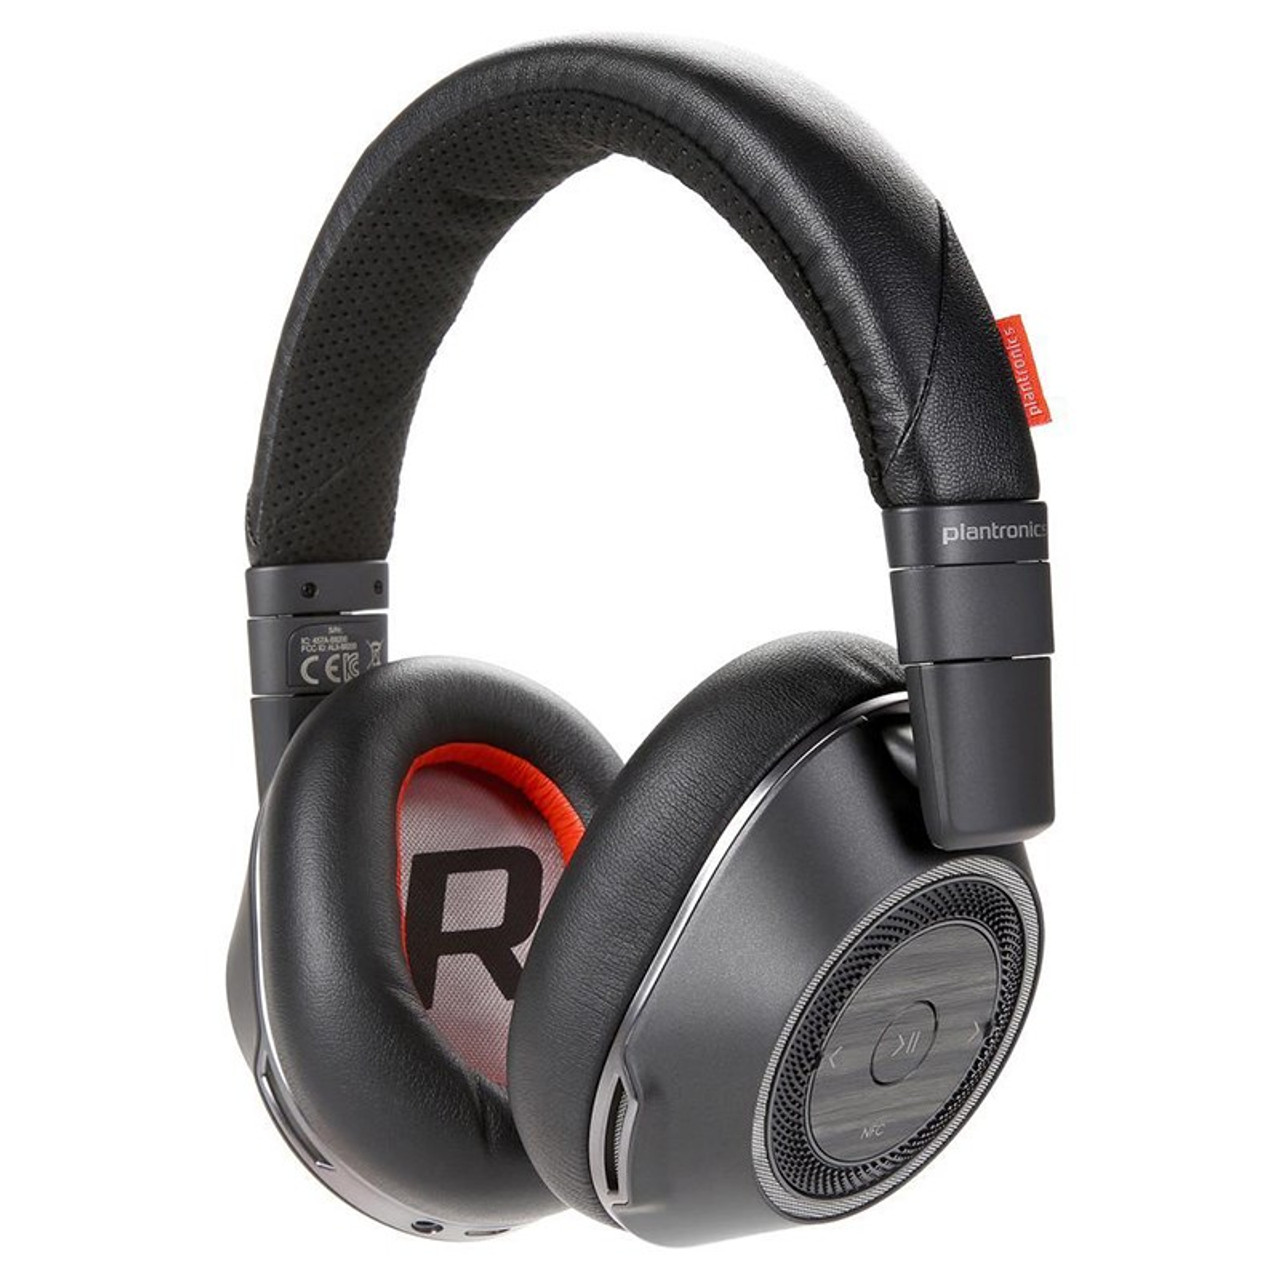 Image for Plantronics Voyager B8200 UC USB-C Bluetooth Wireless Headset - Black CX Computer Superstore